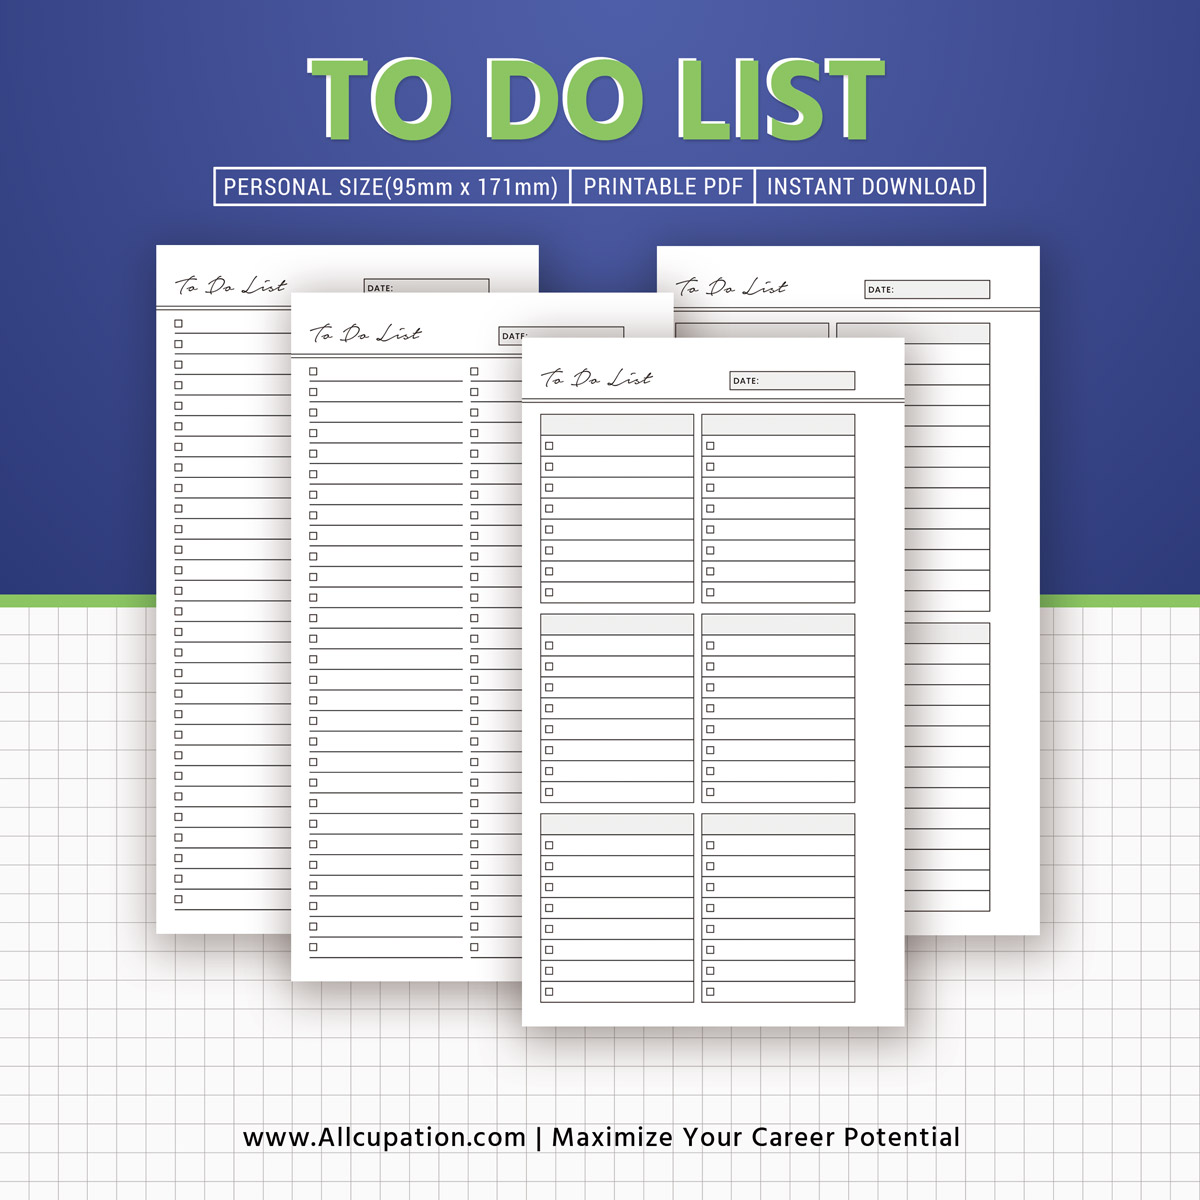 to do list printable, to do list inserts, personal size, notepad